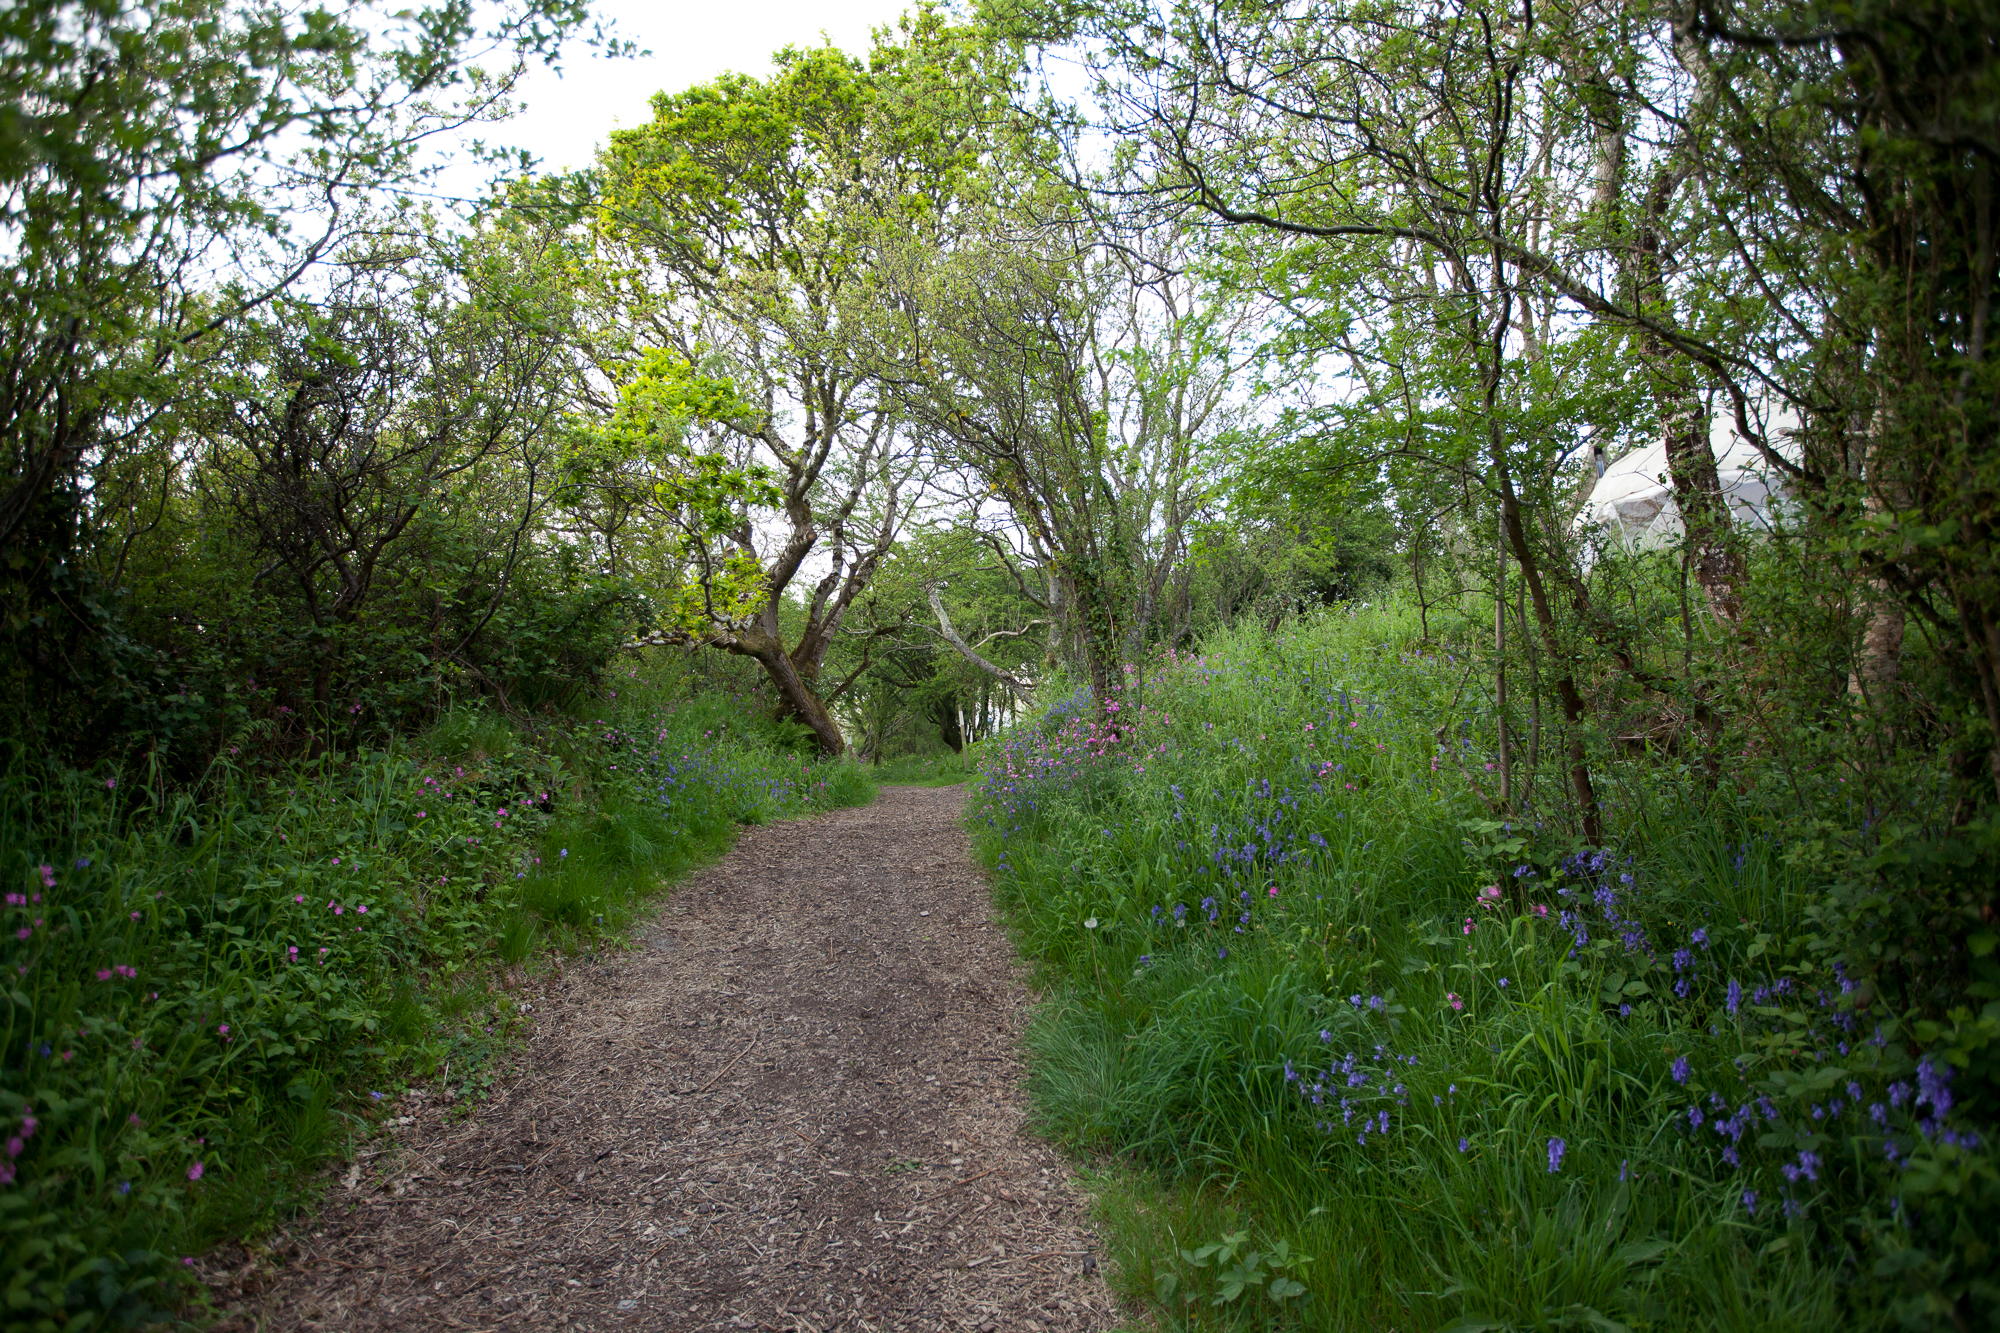 Pathway with bluebells. By Leonie Wise